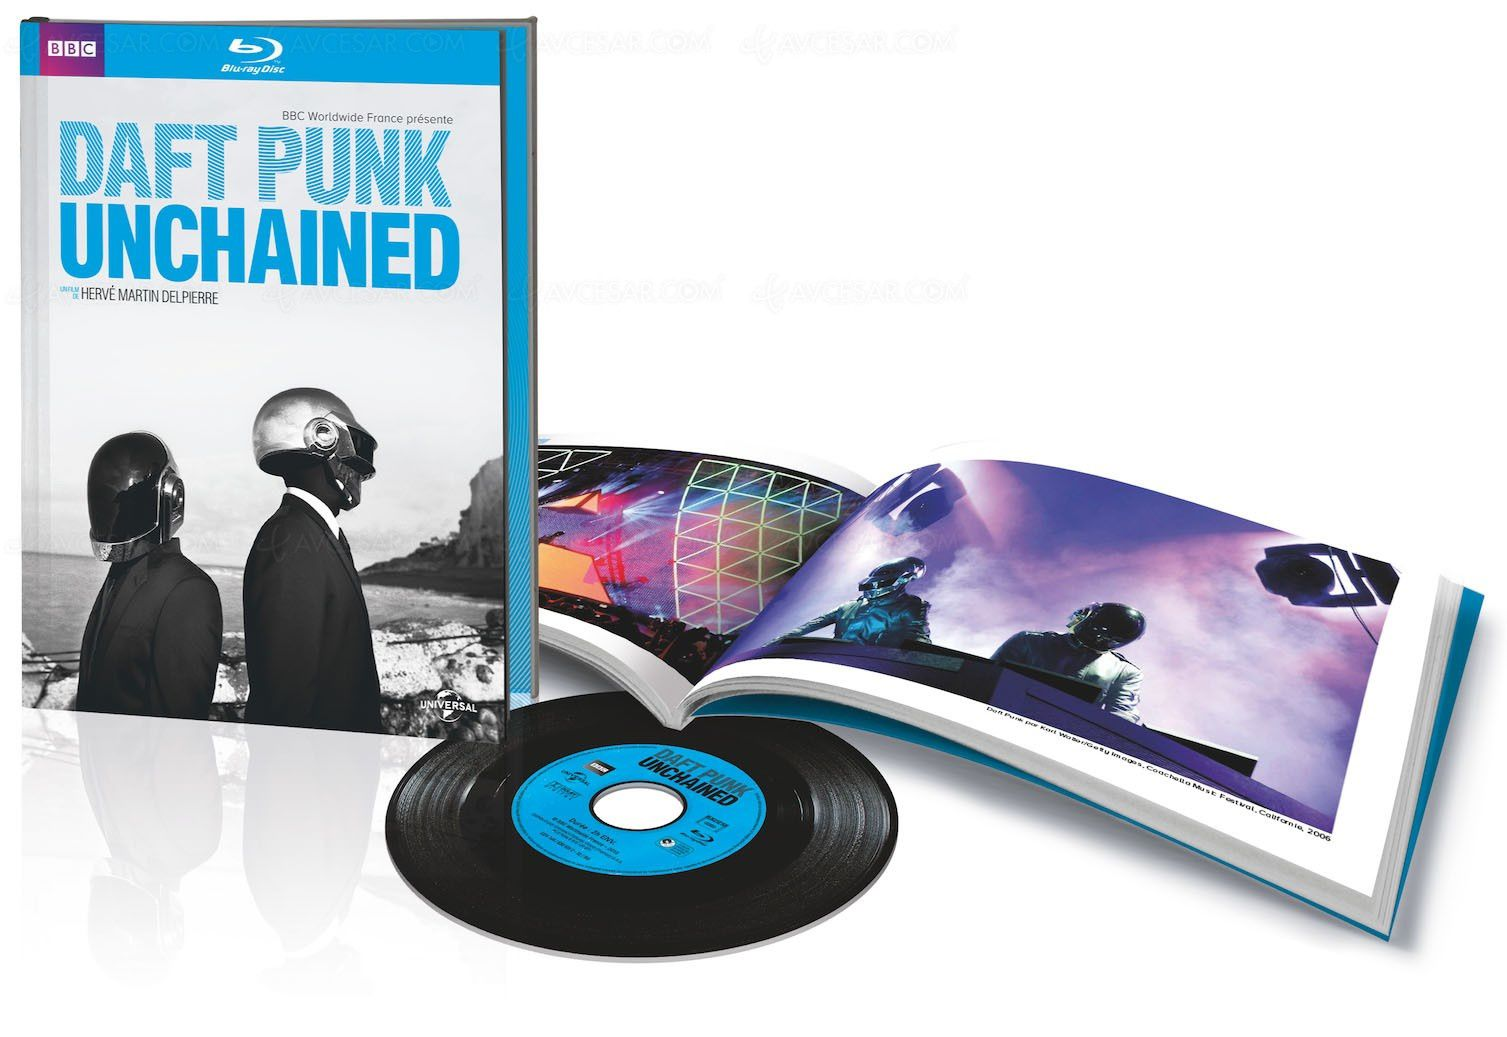 Blu-Ray/DVD Daft Punk Unchained : is playing at your house